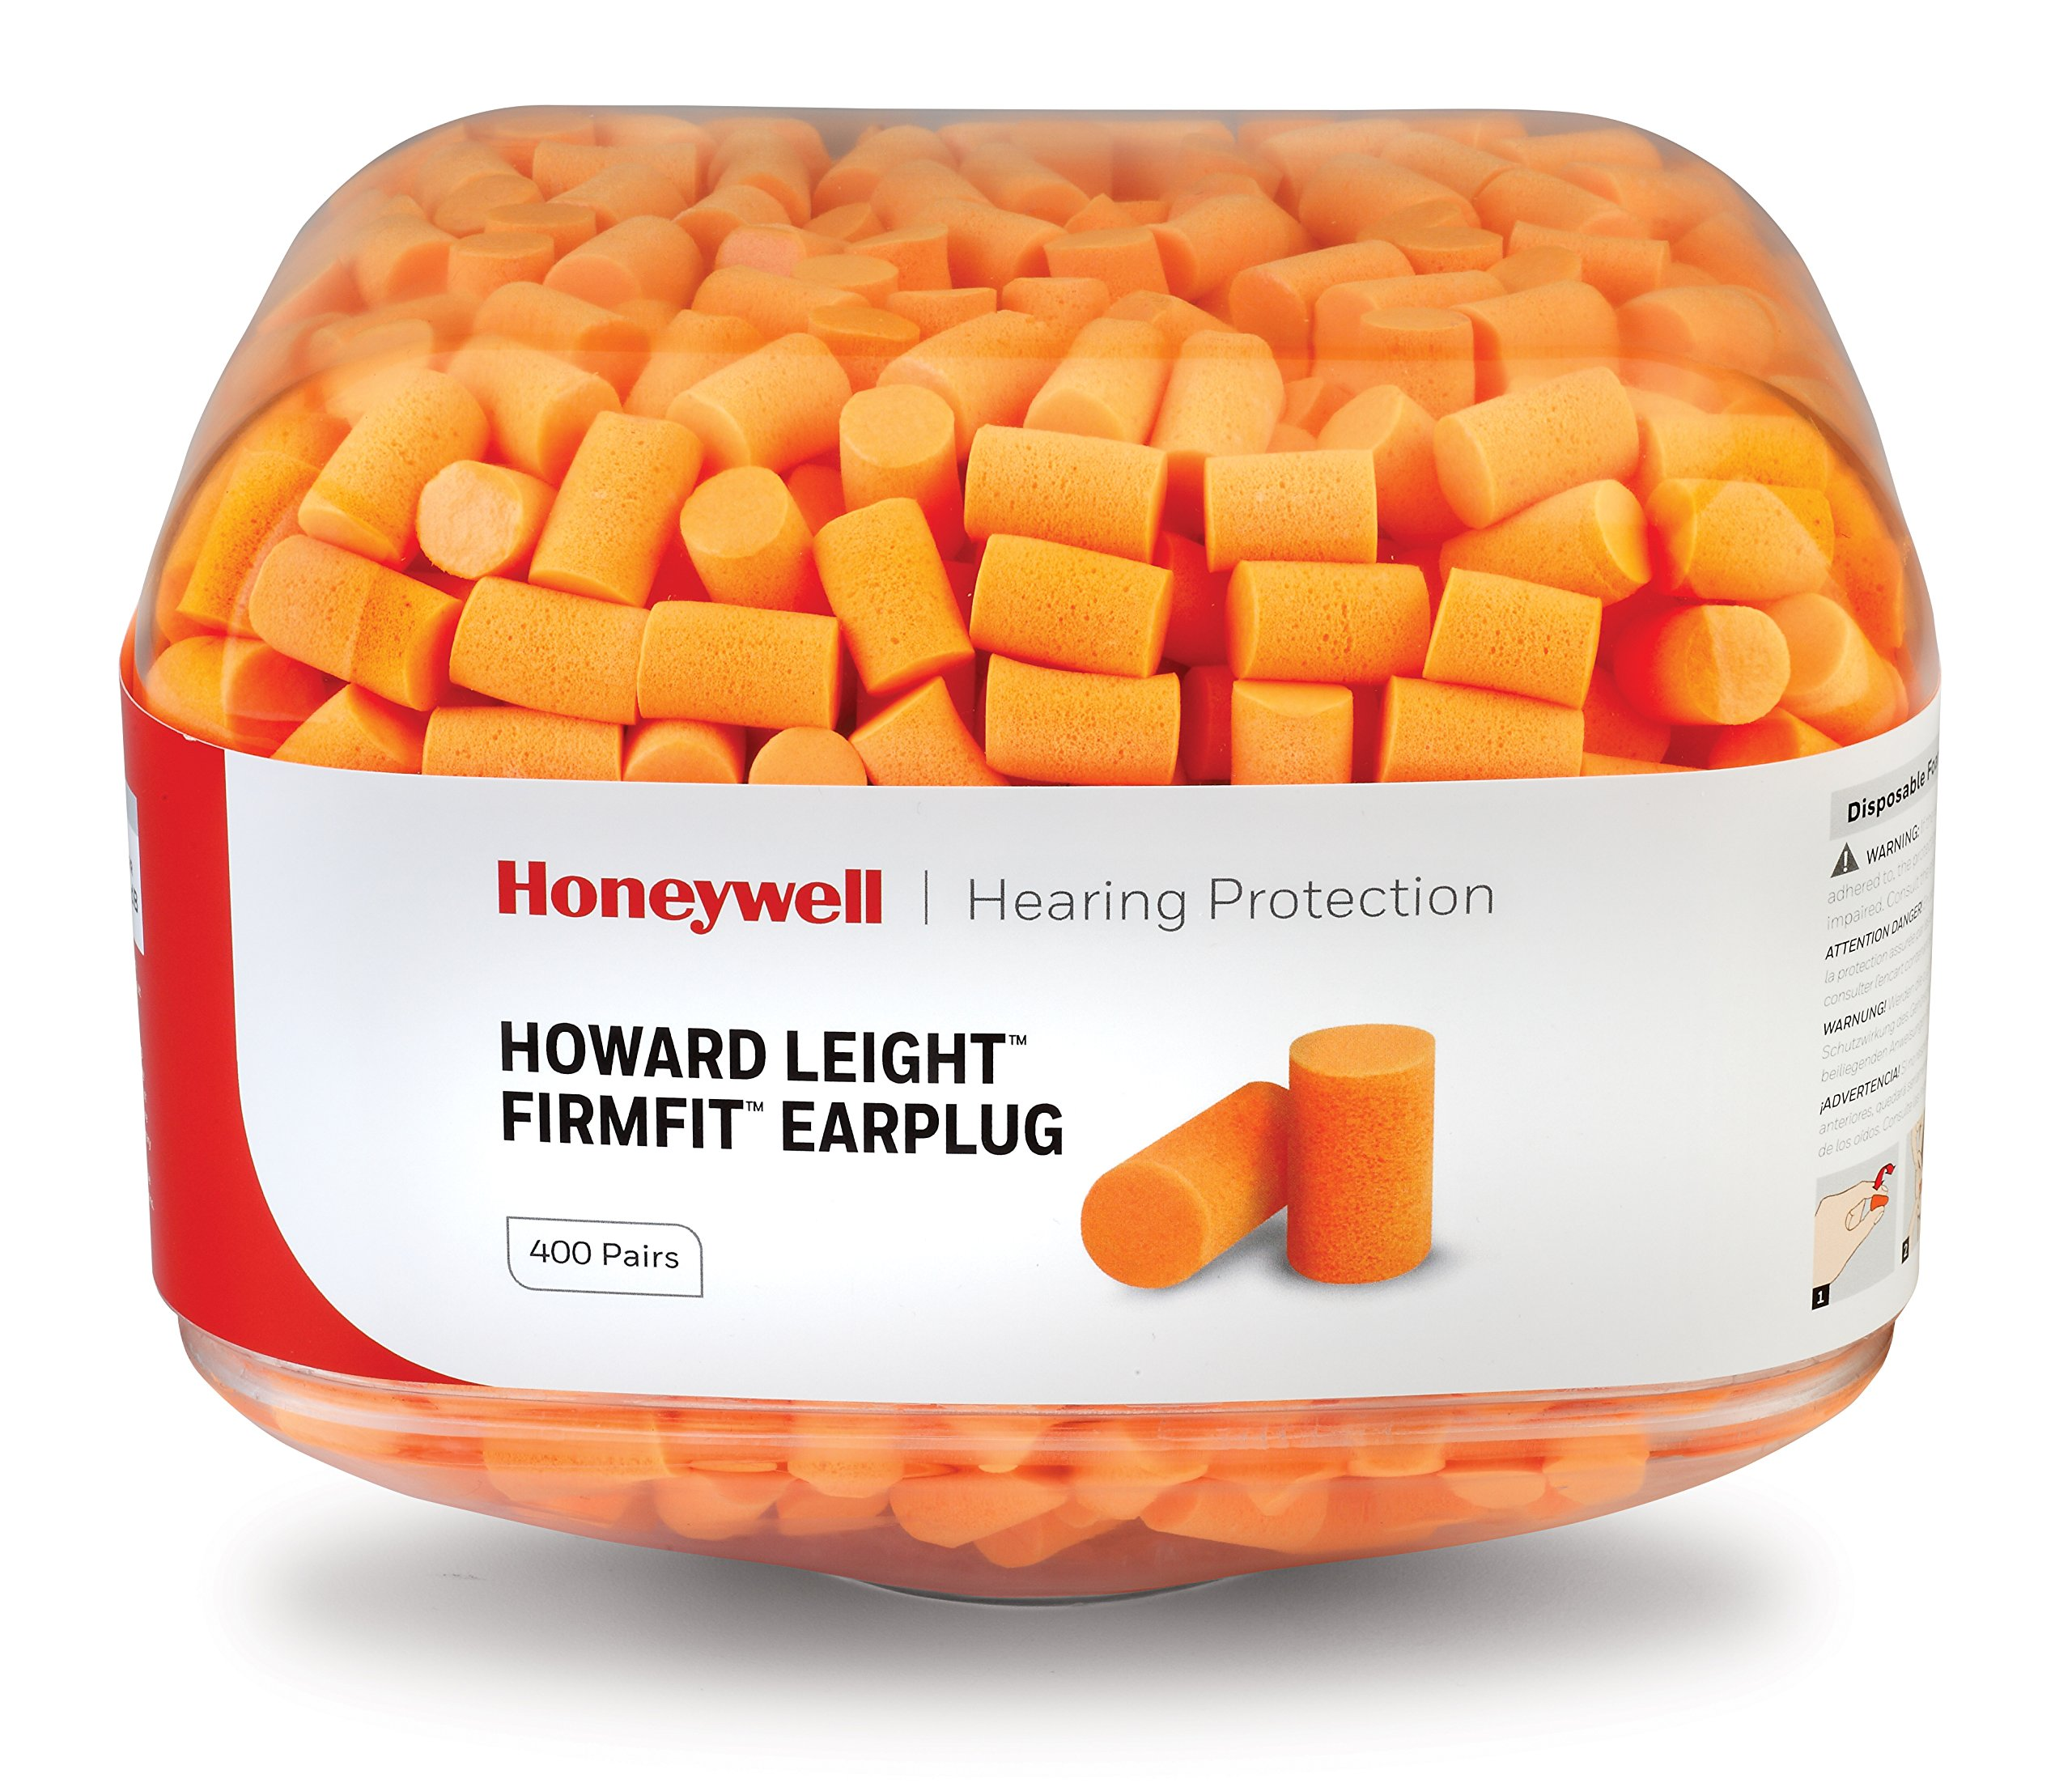 Howard Leight FirmFit Earplug Refill for HL400 Dispenser, 800 Pairs (Two 400-Pair Canisters), NRR 30 (HL400-FF-REFILL) by Honeywell (Image #1)